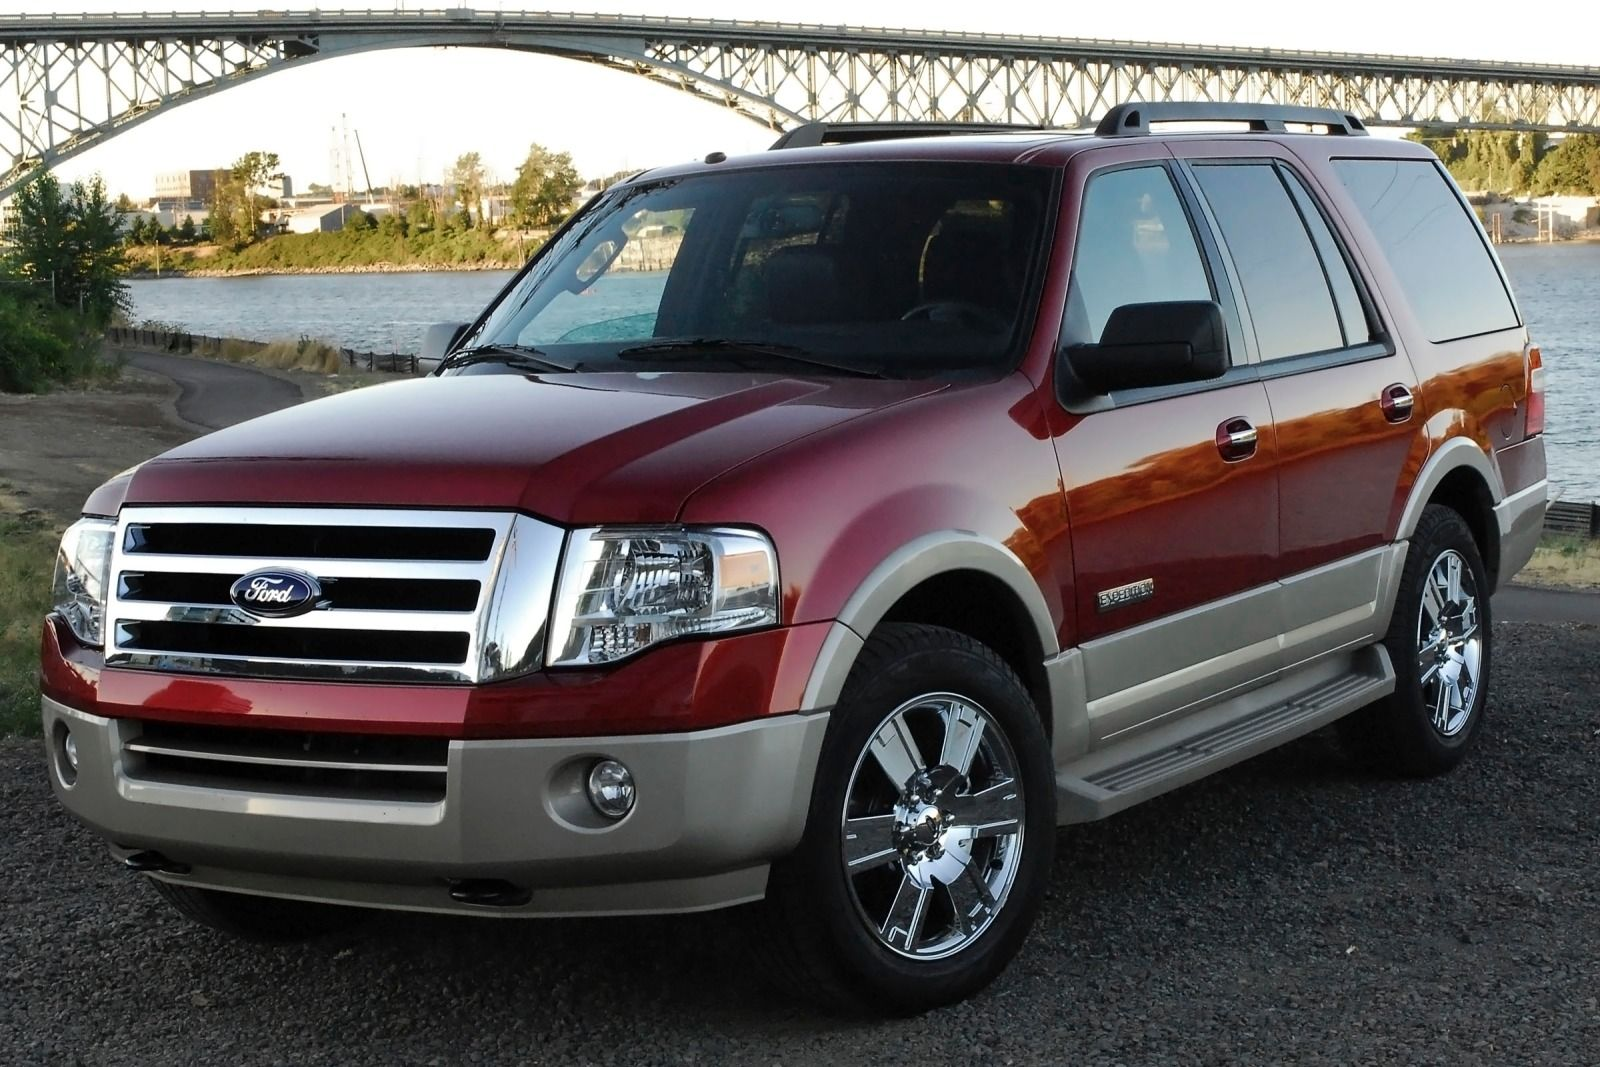 Ford Expedition XL Fleet #21